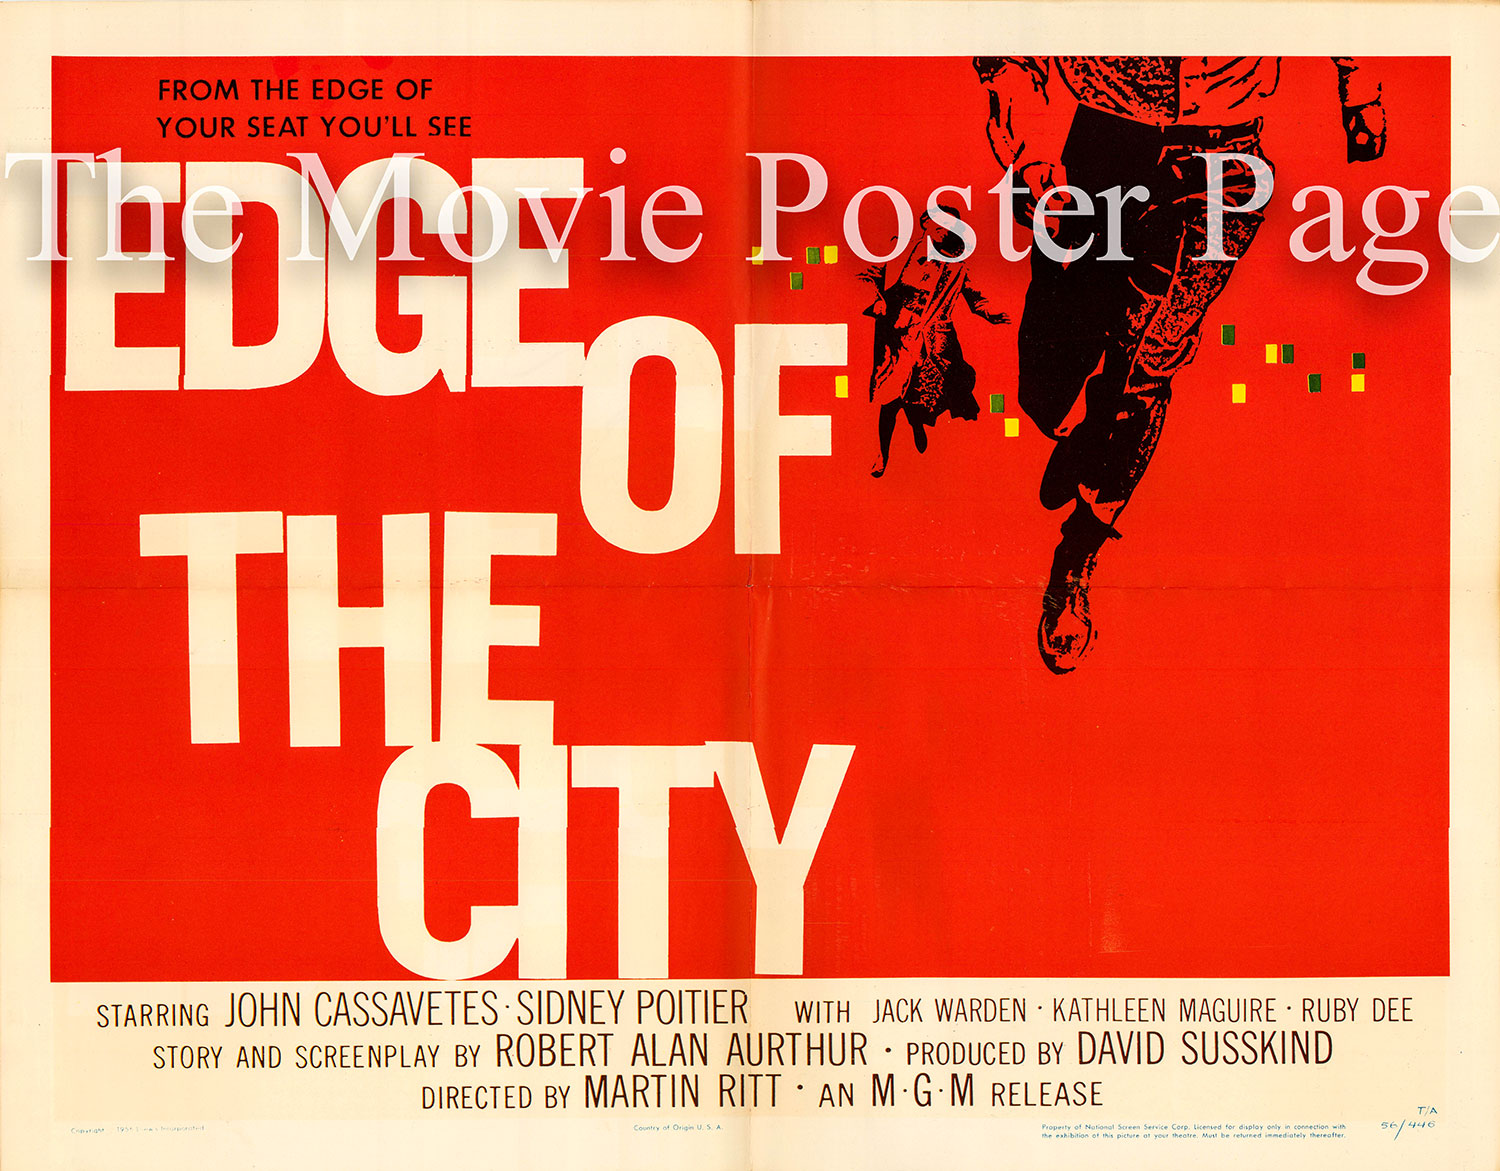 Pictured is a US half-sheet promotional poster for the 1957 Martin Ritt film Edge of the City starring Sidney Poitier and John Cassavetes, with art by Saul Bass.